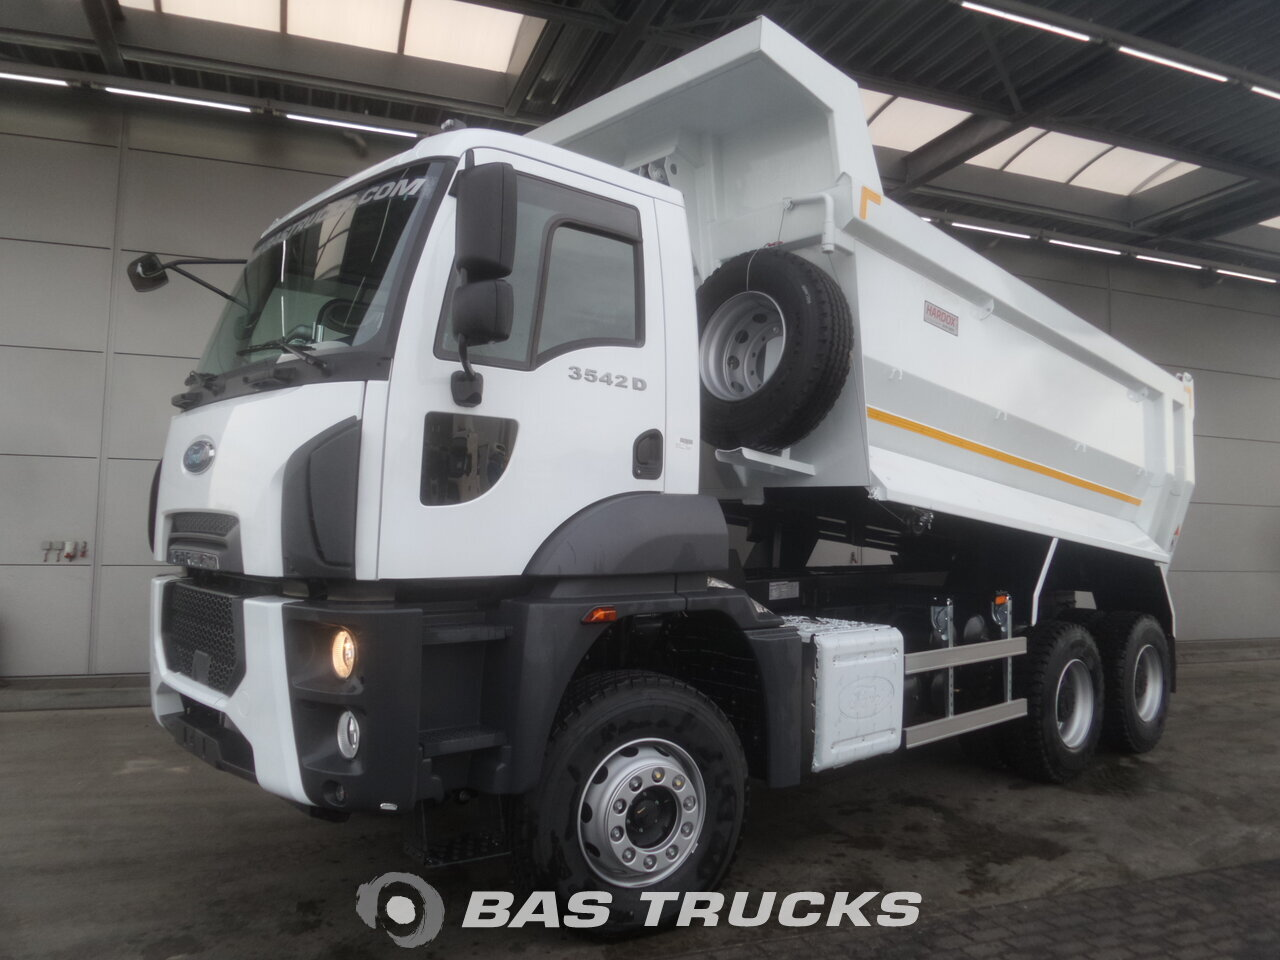 Ford Cargo 3542 D Truck Euro Norm 3 60400 Bas Trucks